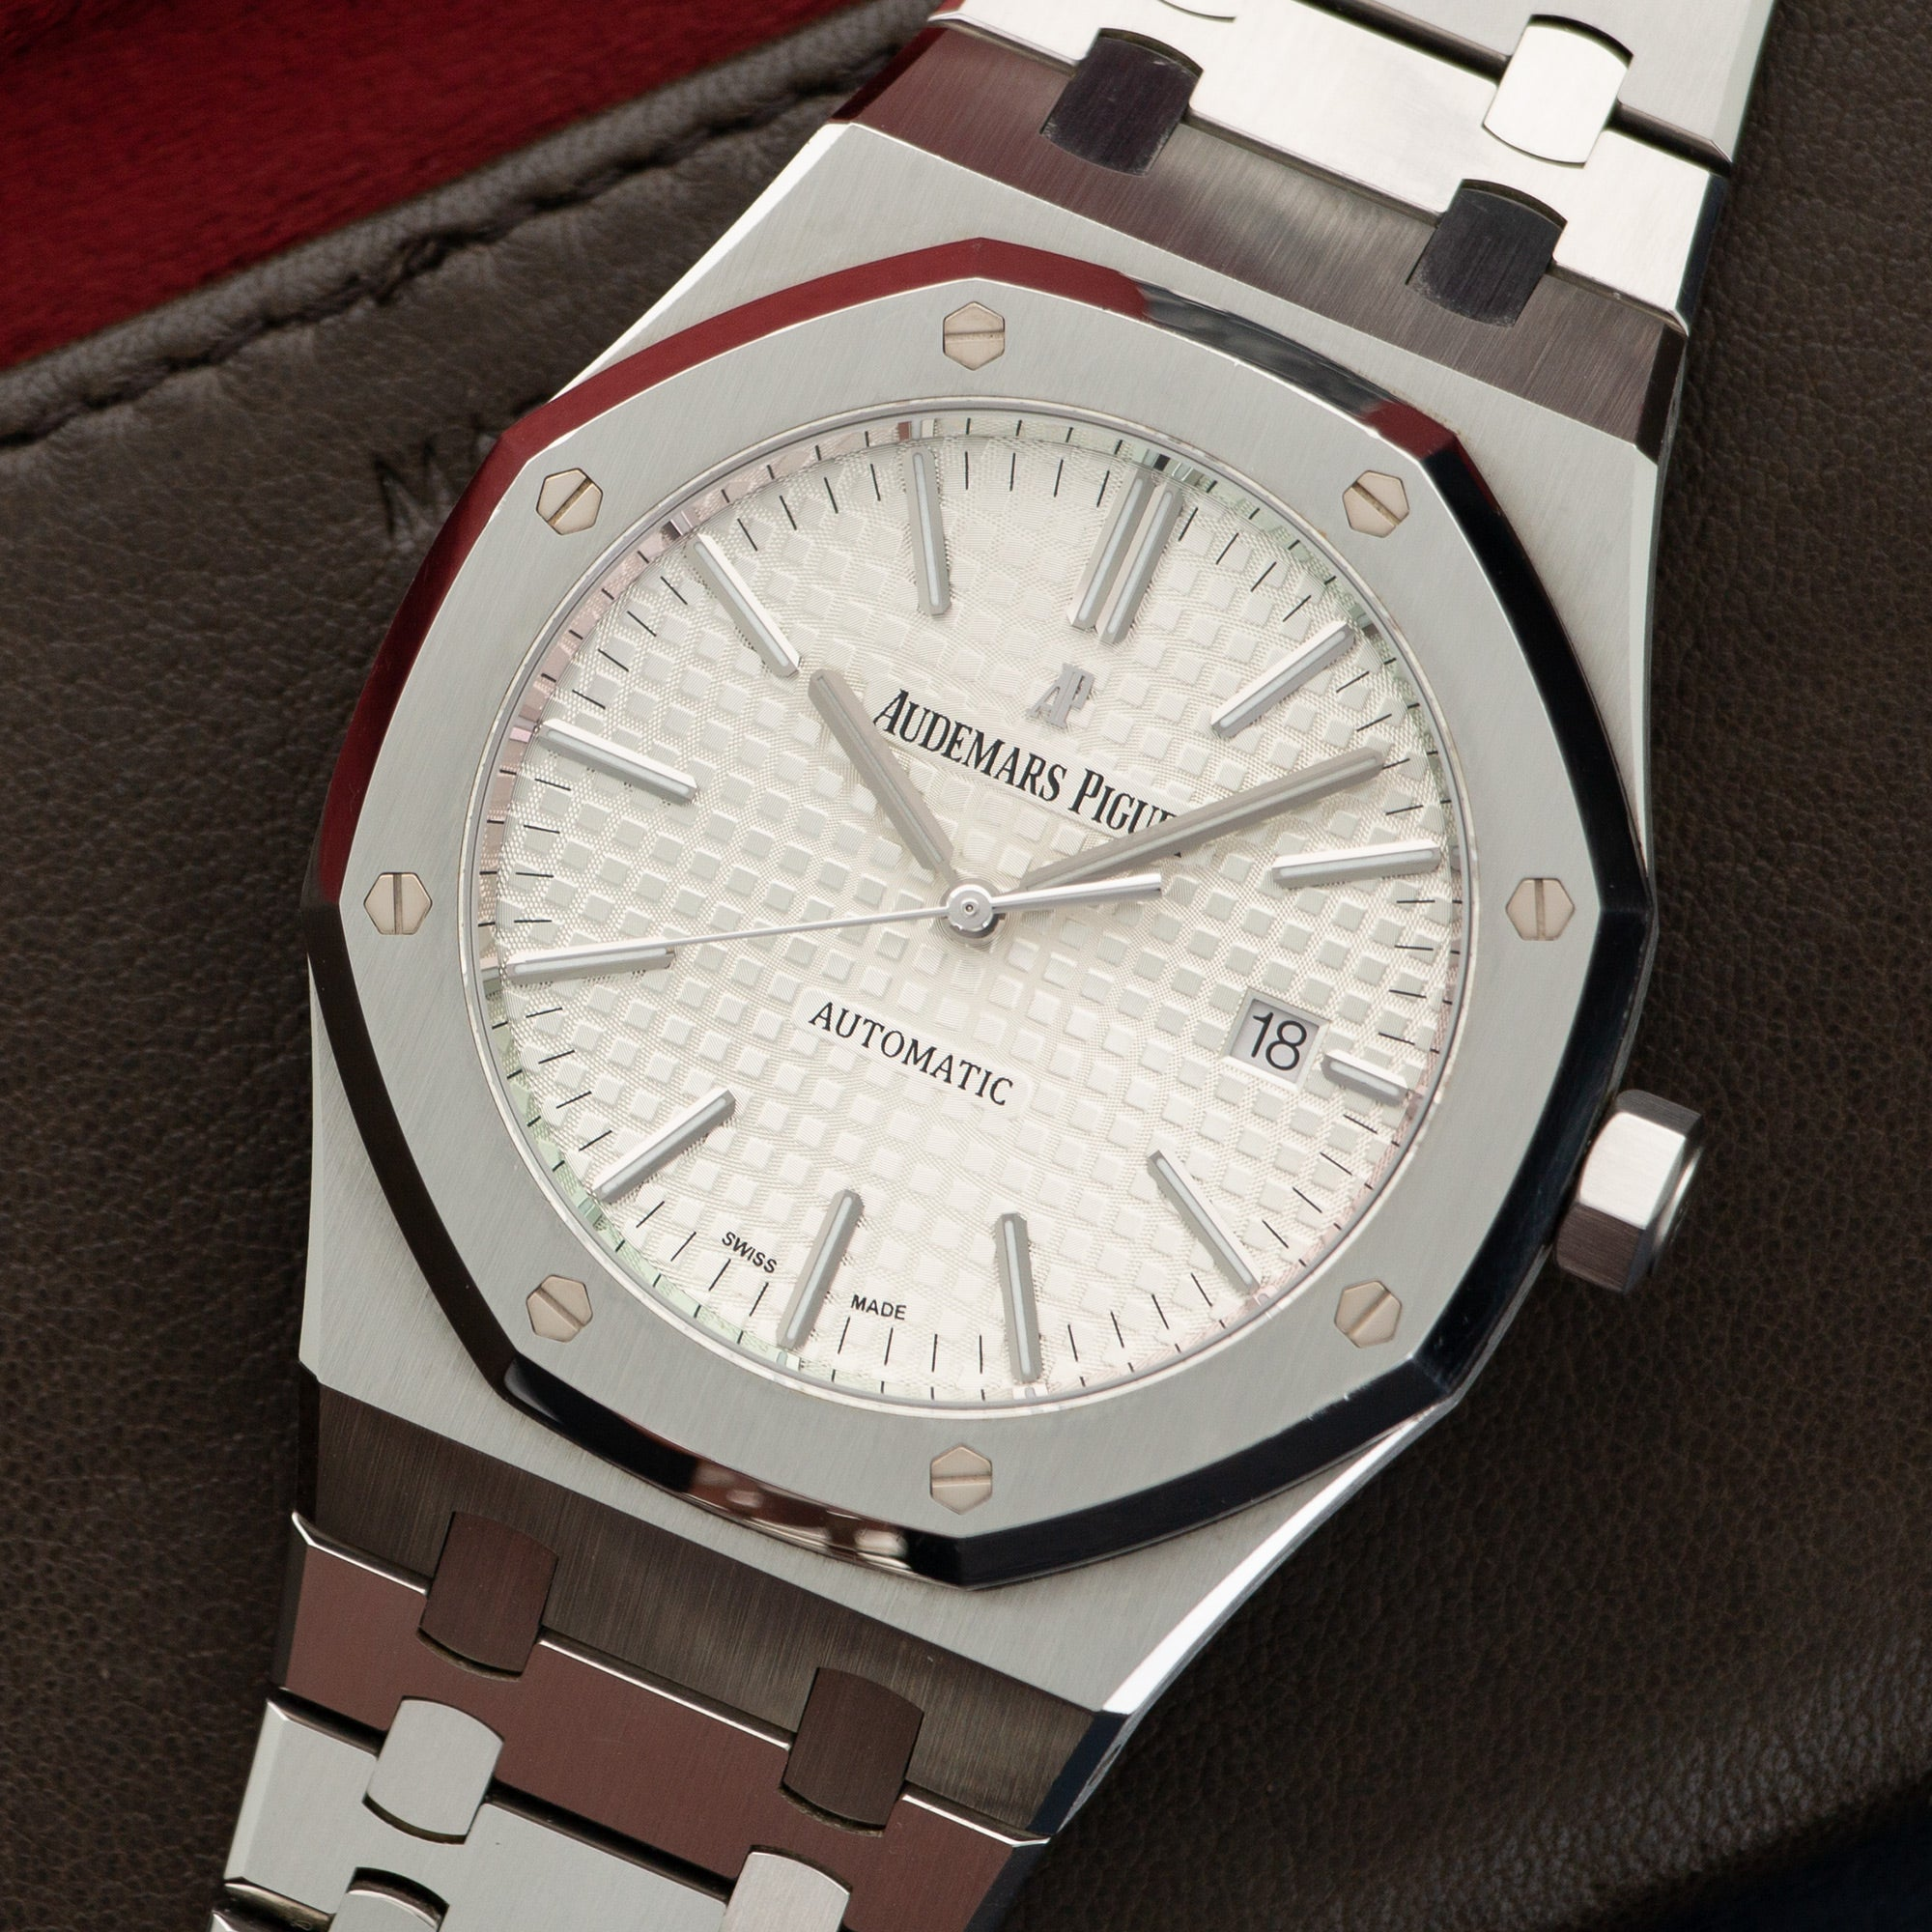 Audemars Piguet Royal Oak 15400ST.OO.122 Steel  Likely Never Polished, Original Finish Gents Steel Silver 41mm Automatic Current Stainless Steel Bracelet Leather Travel Case